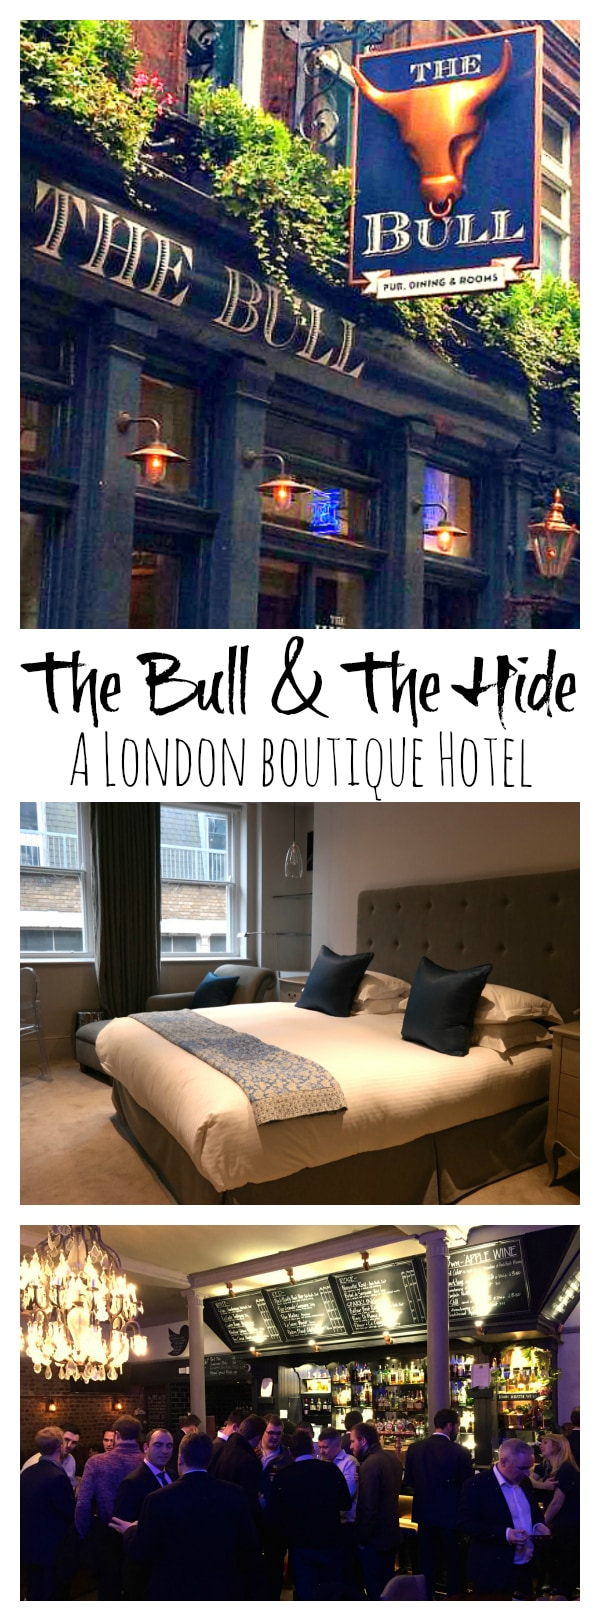 The Bull and The Hide: A London Boutique Hotel at Reluctant Entertainer